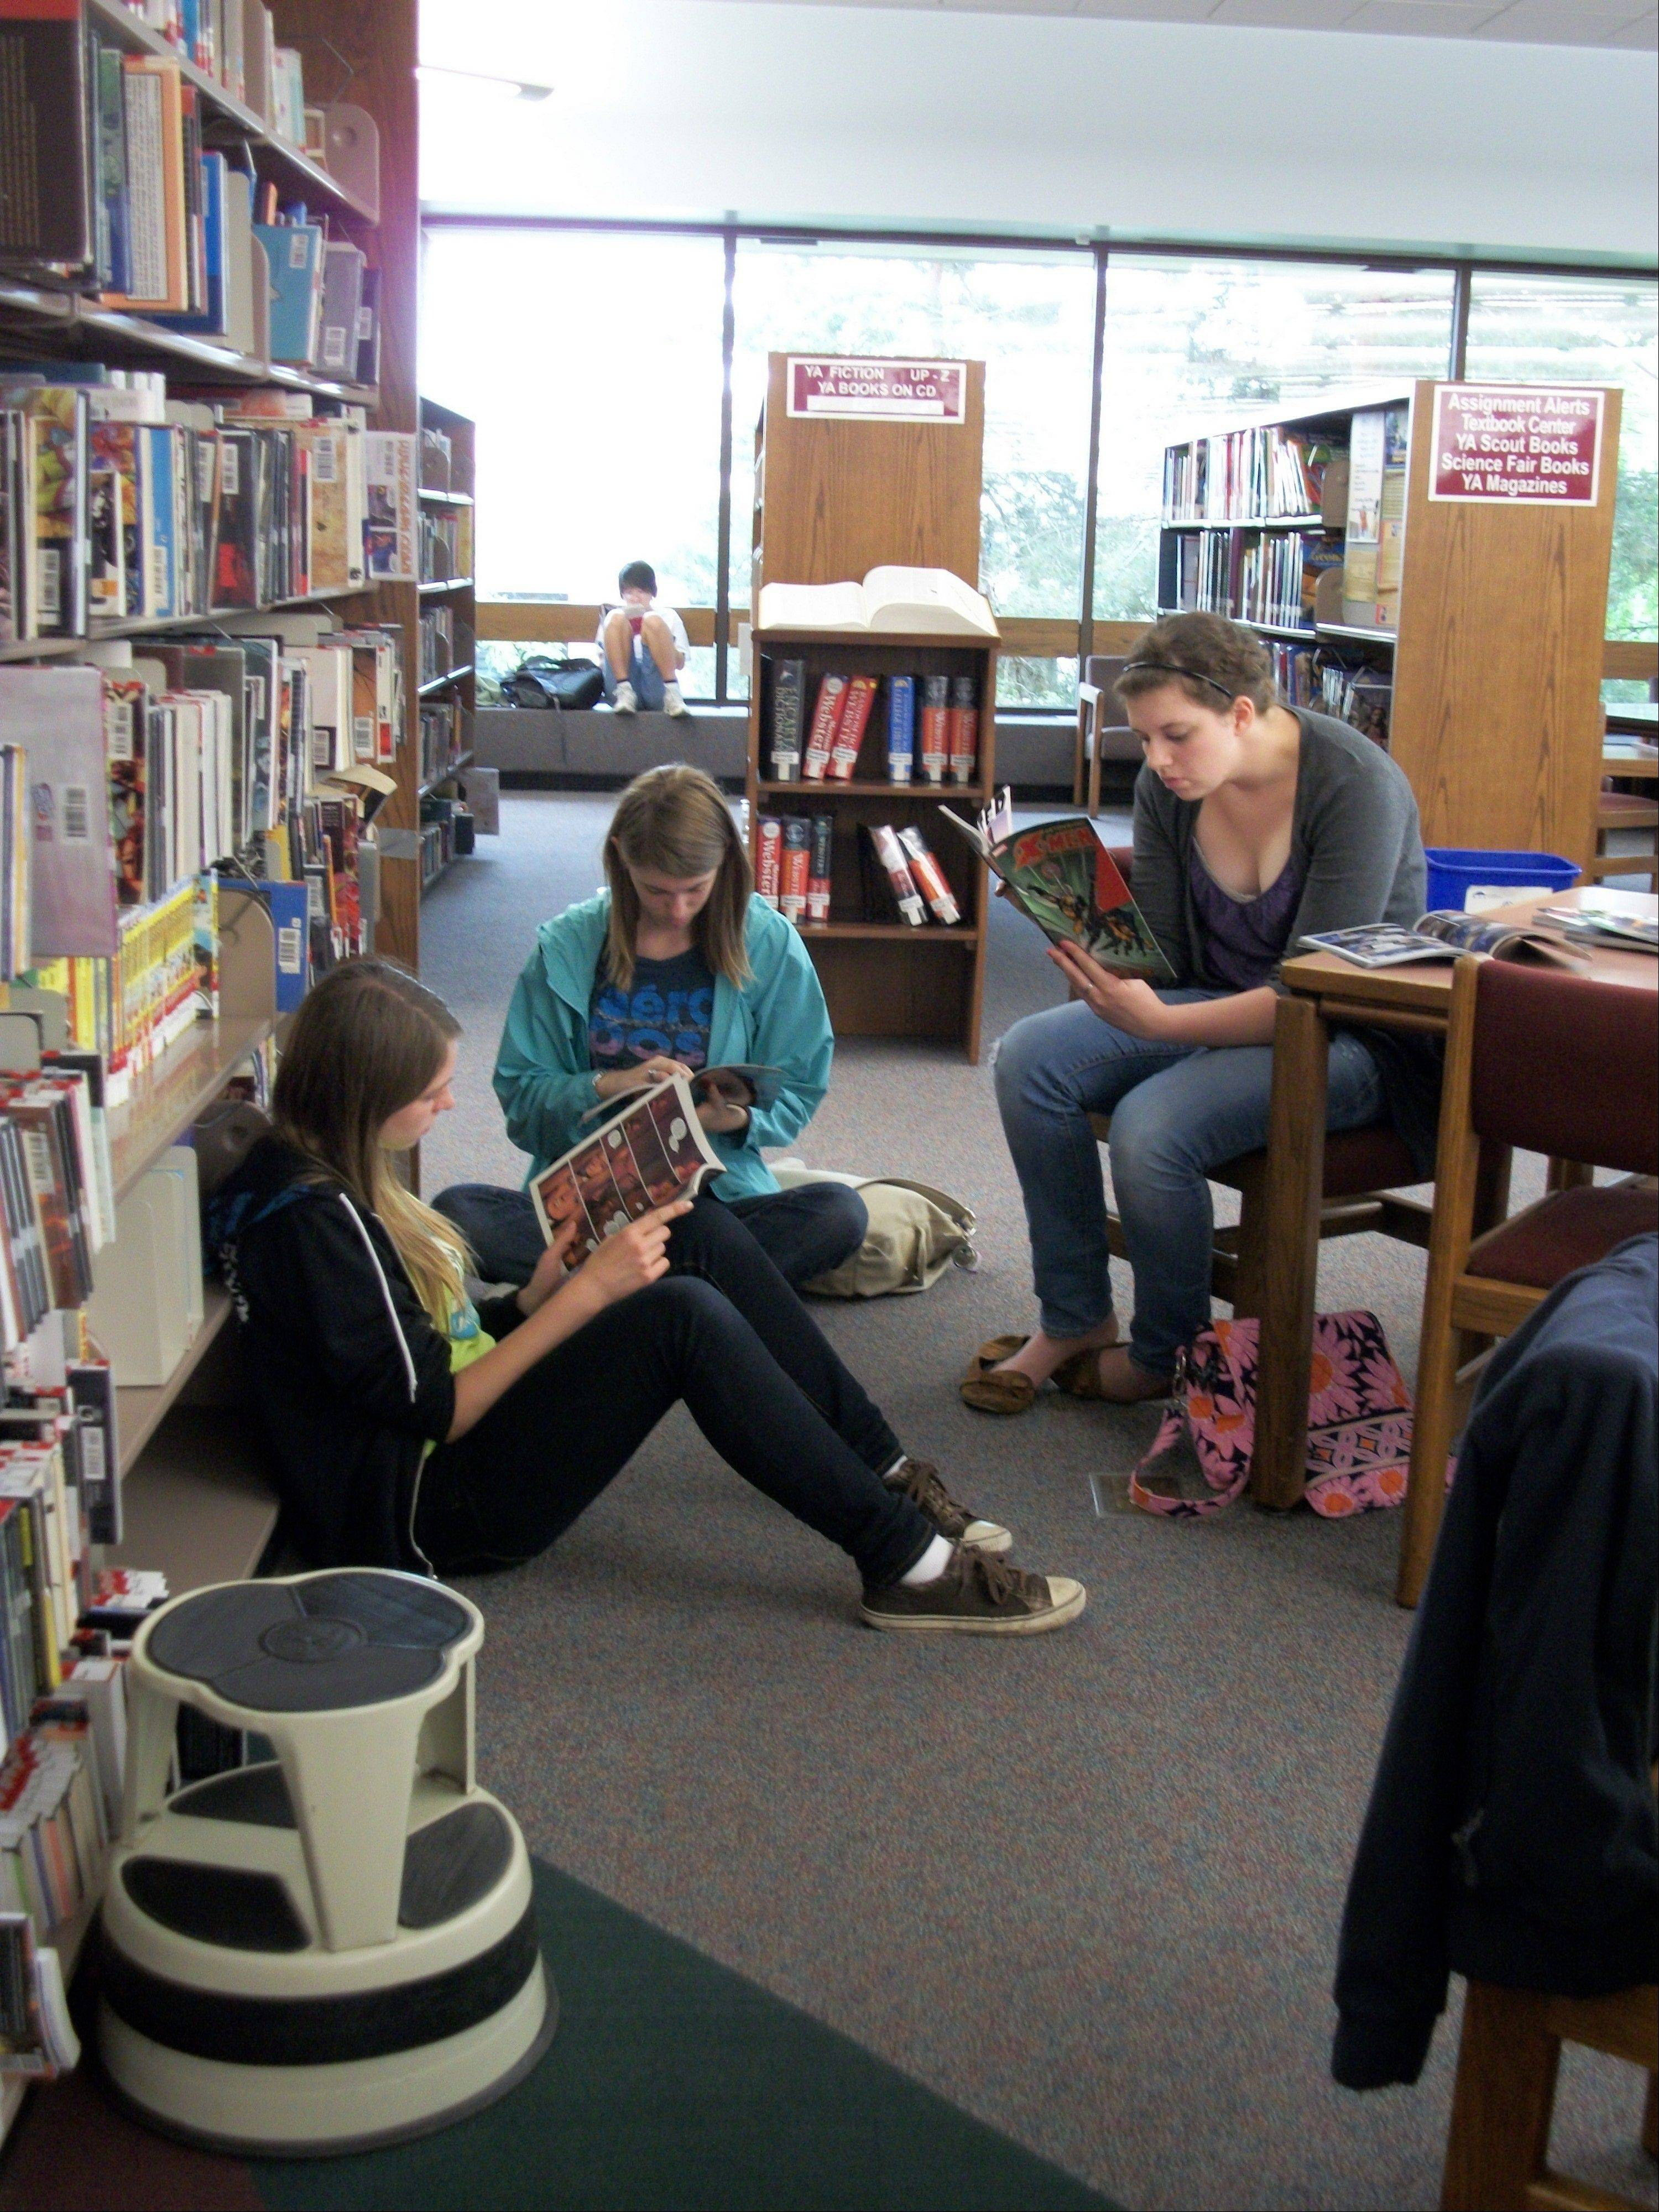 Naperville's downtown Nichols Library will offer extended Sunday hours beginning Jan. 5 and continuing through May 18, officials said this week. The extended hours then will resume Sept. 7.